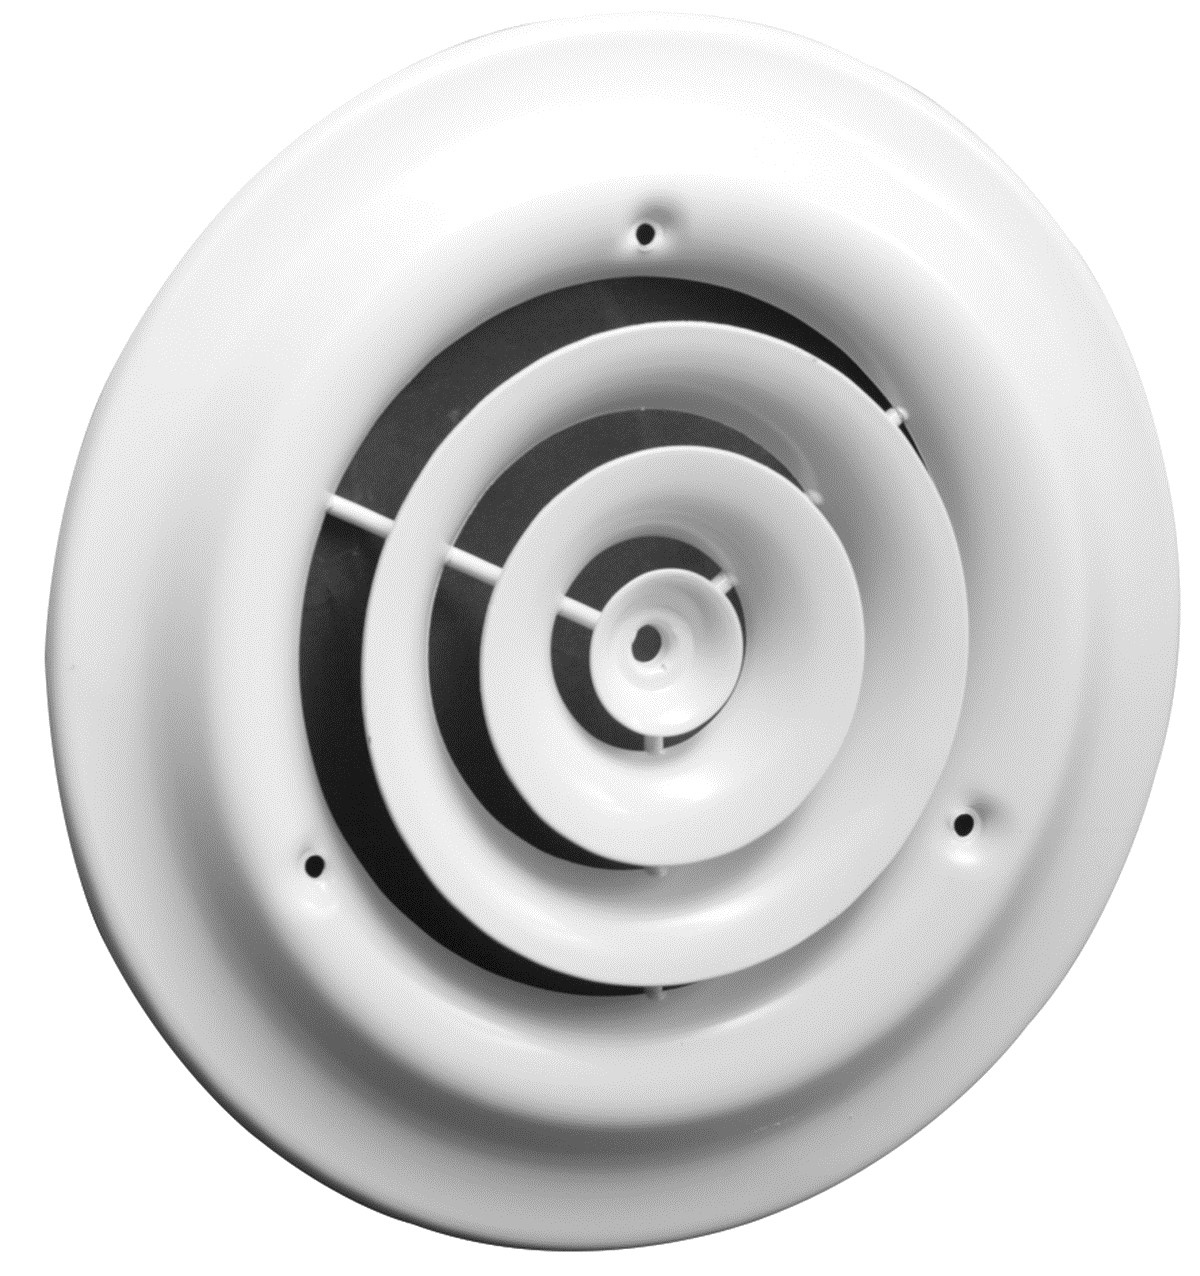 Buy The Hart Amp Cooley 1500w6 Round Ceiling Diffuser White